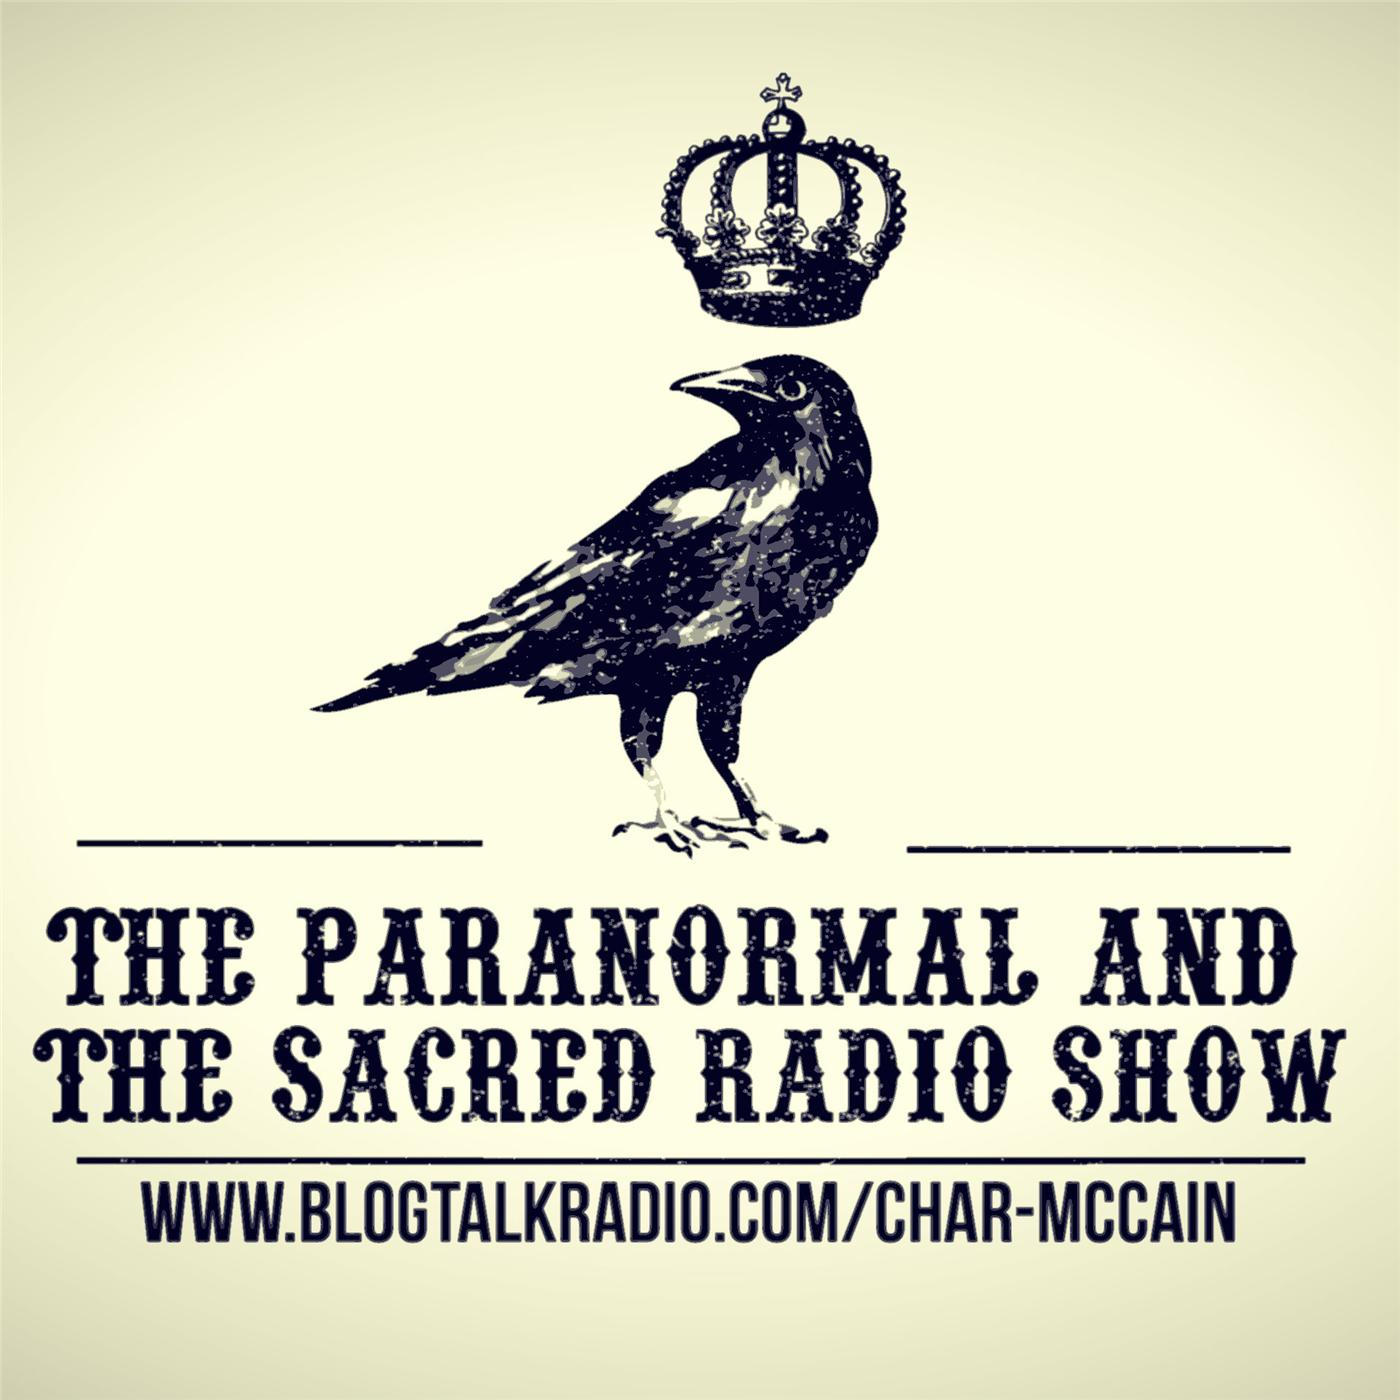 The Paranormal and The Sacred Radio Show | Podbay